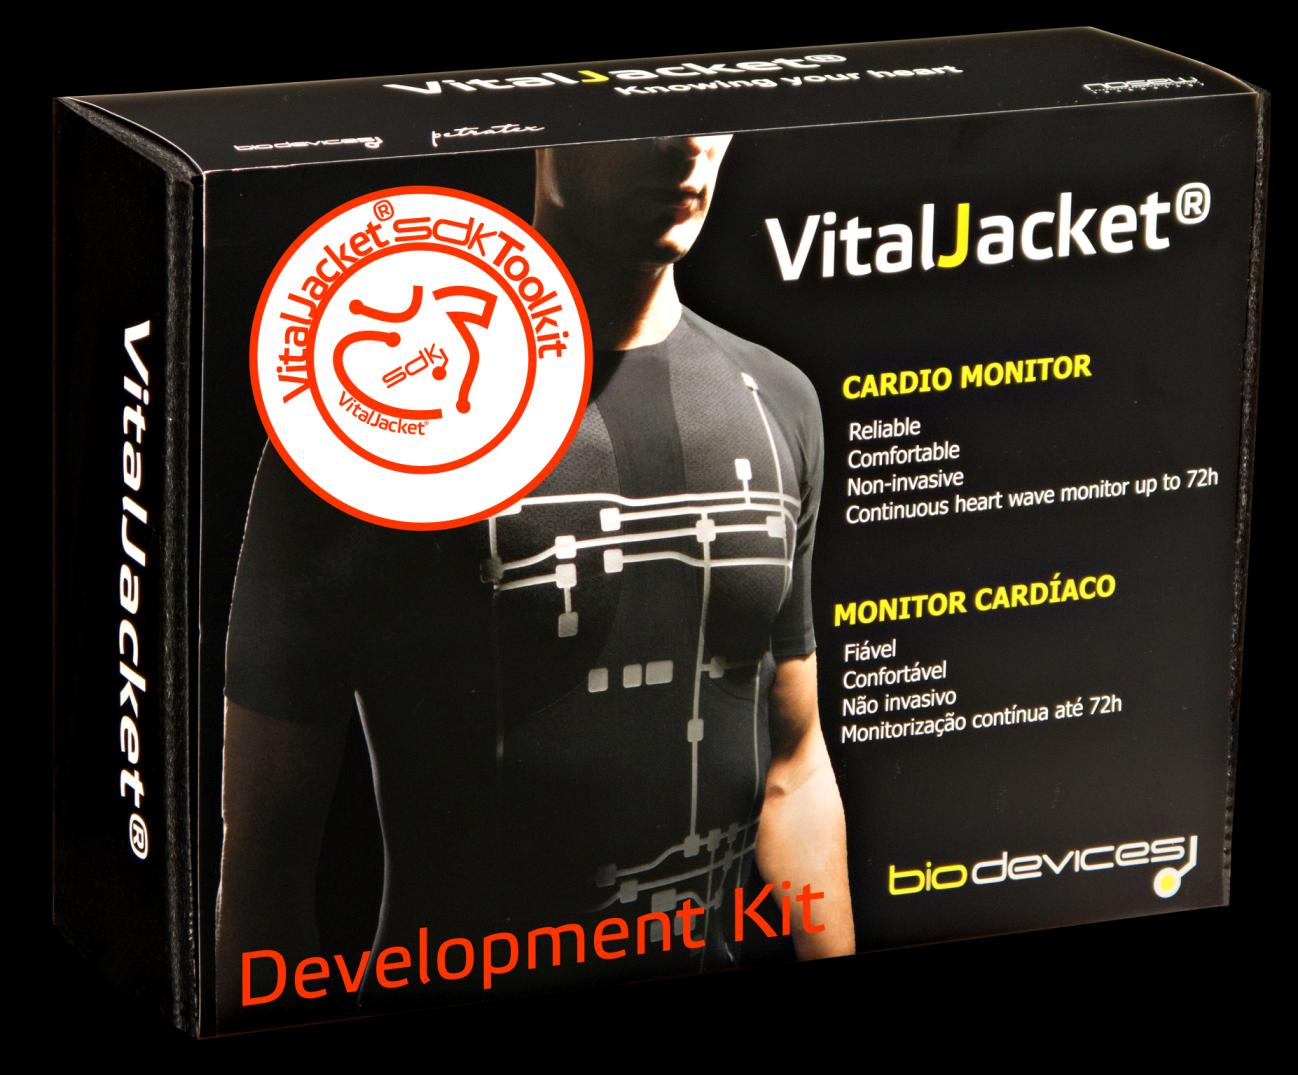 VitalJacket SDK v1.0.